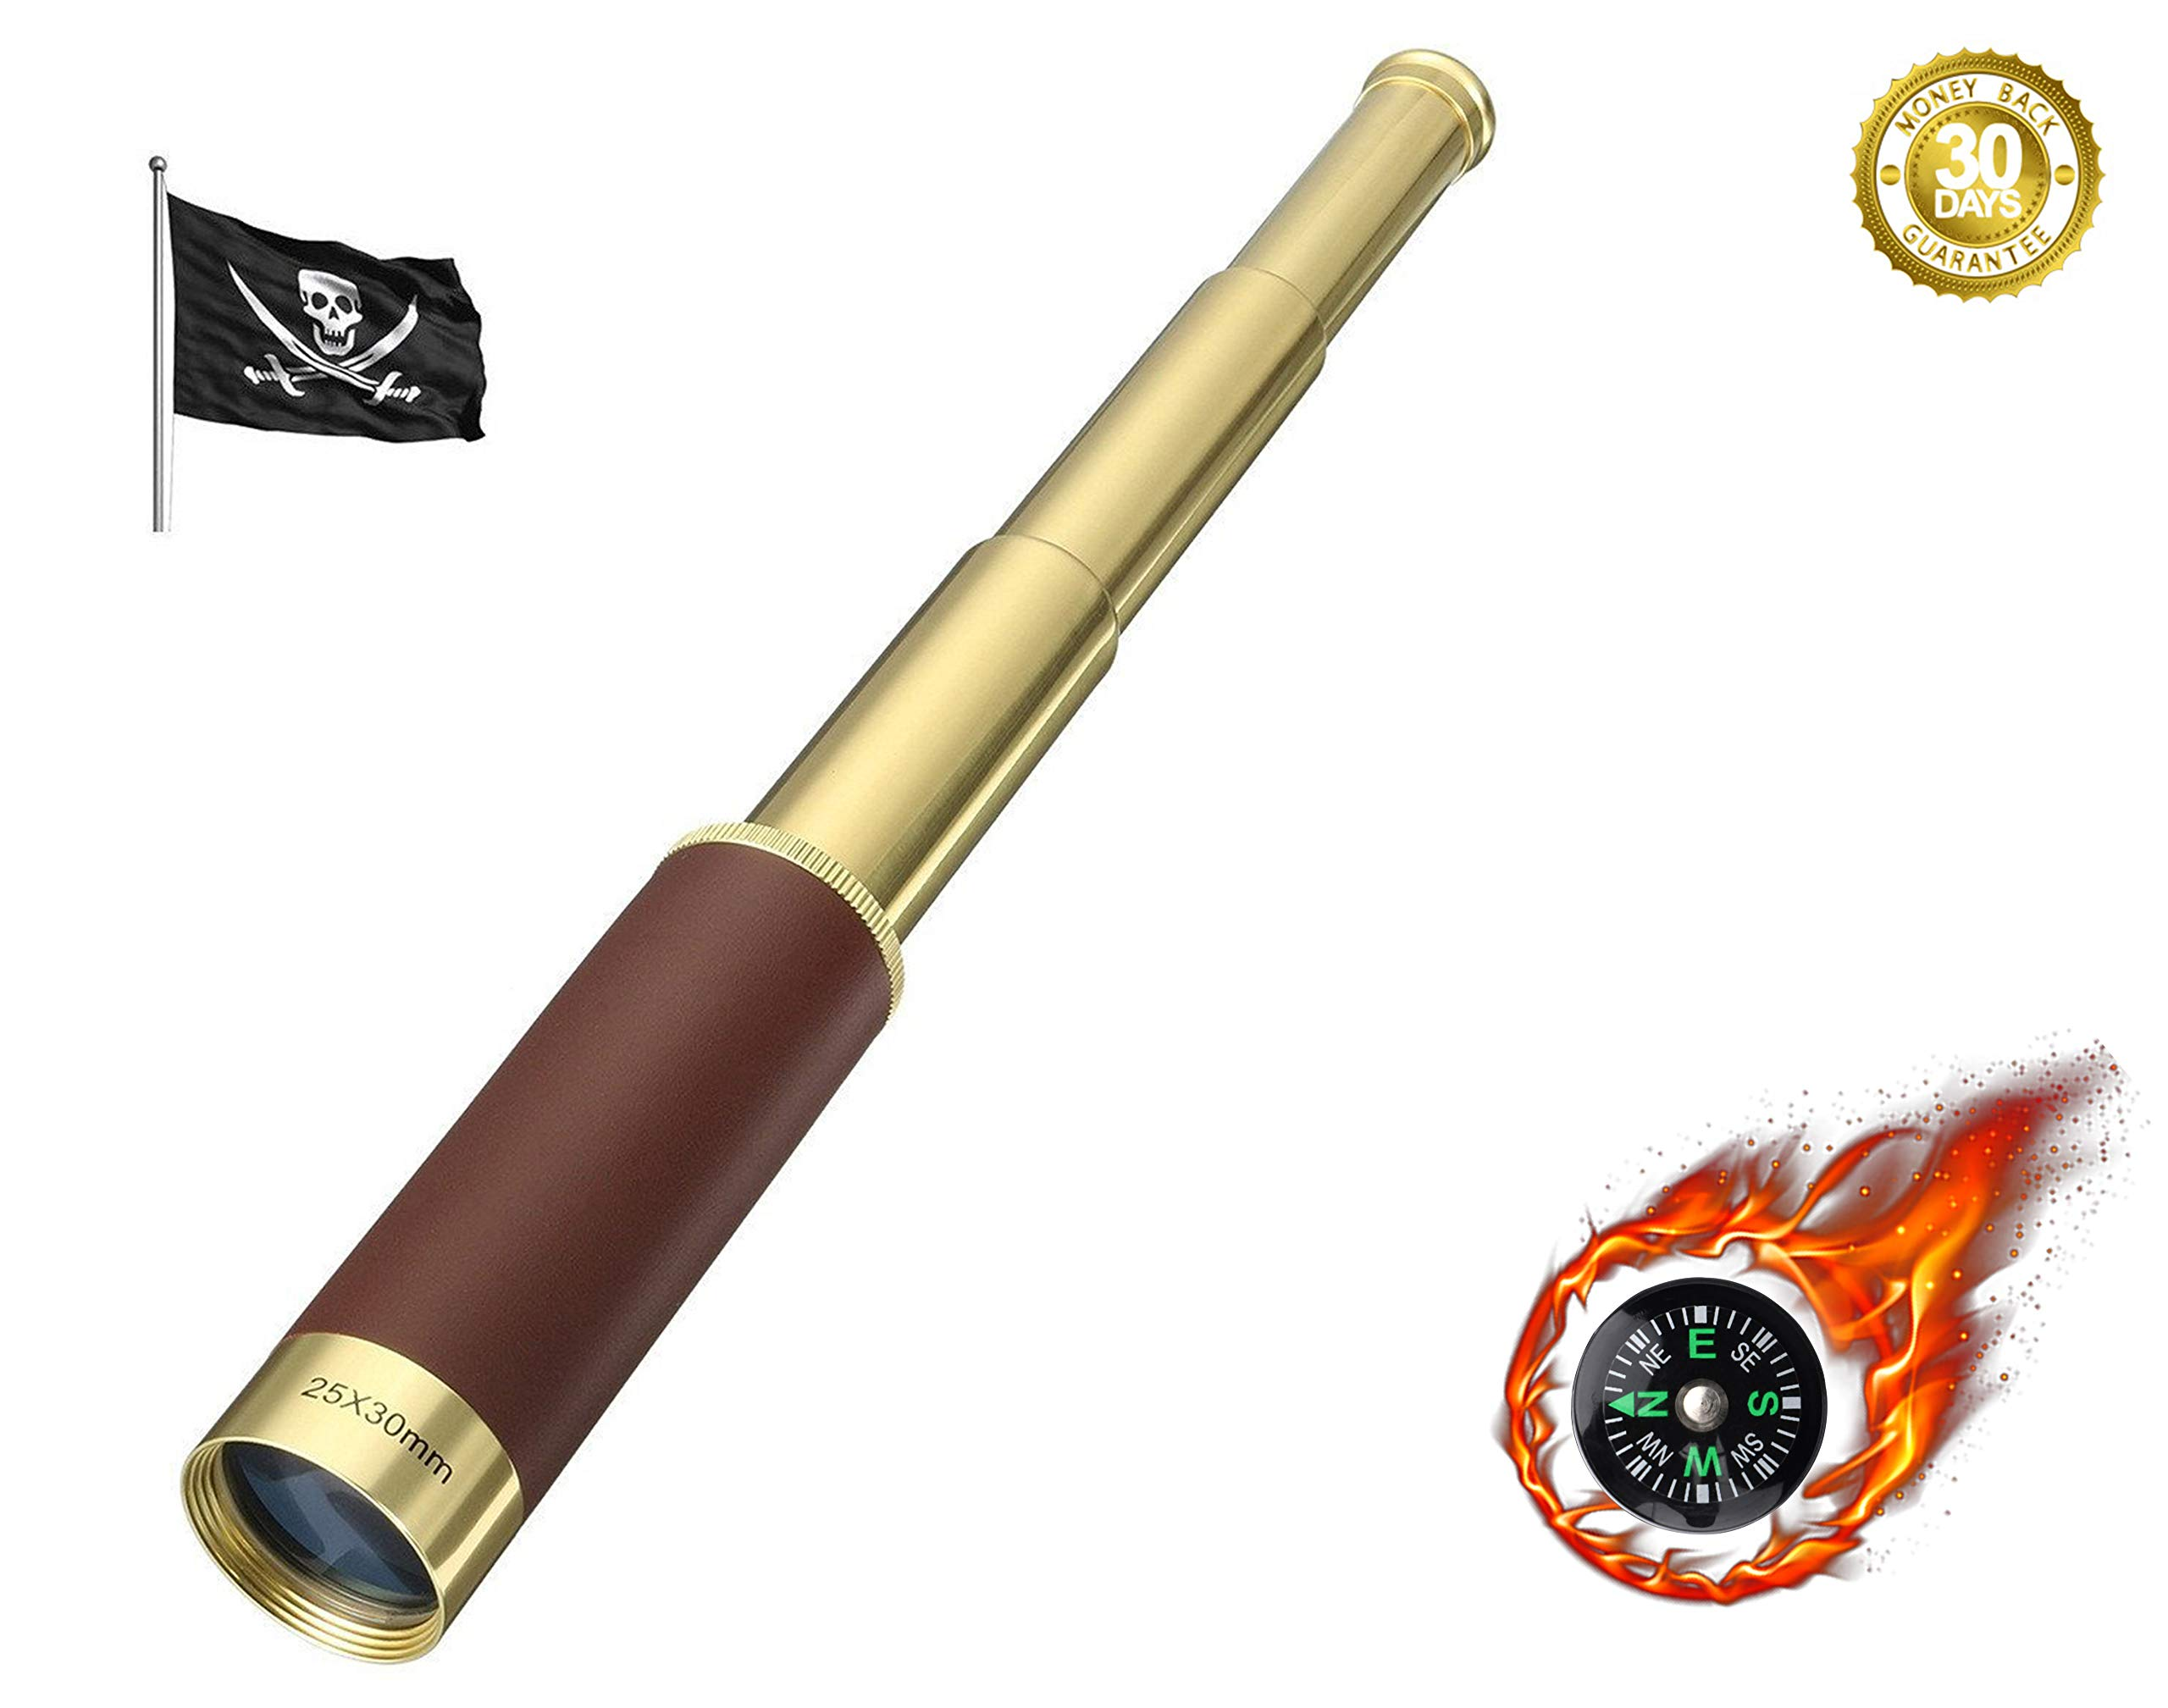 PROCHE Retro Pirate Telescope Zoomable 25x30 Pocket Monocular Portable Collapsible Waterproof Captain Jack's Spyglass Handheld Telescope Vintage Monocular for Kids With Compass by PROCHE